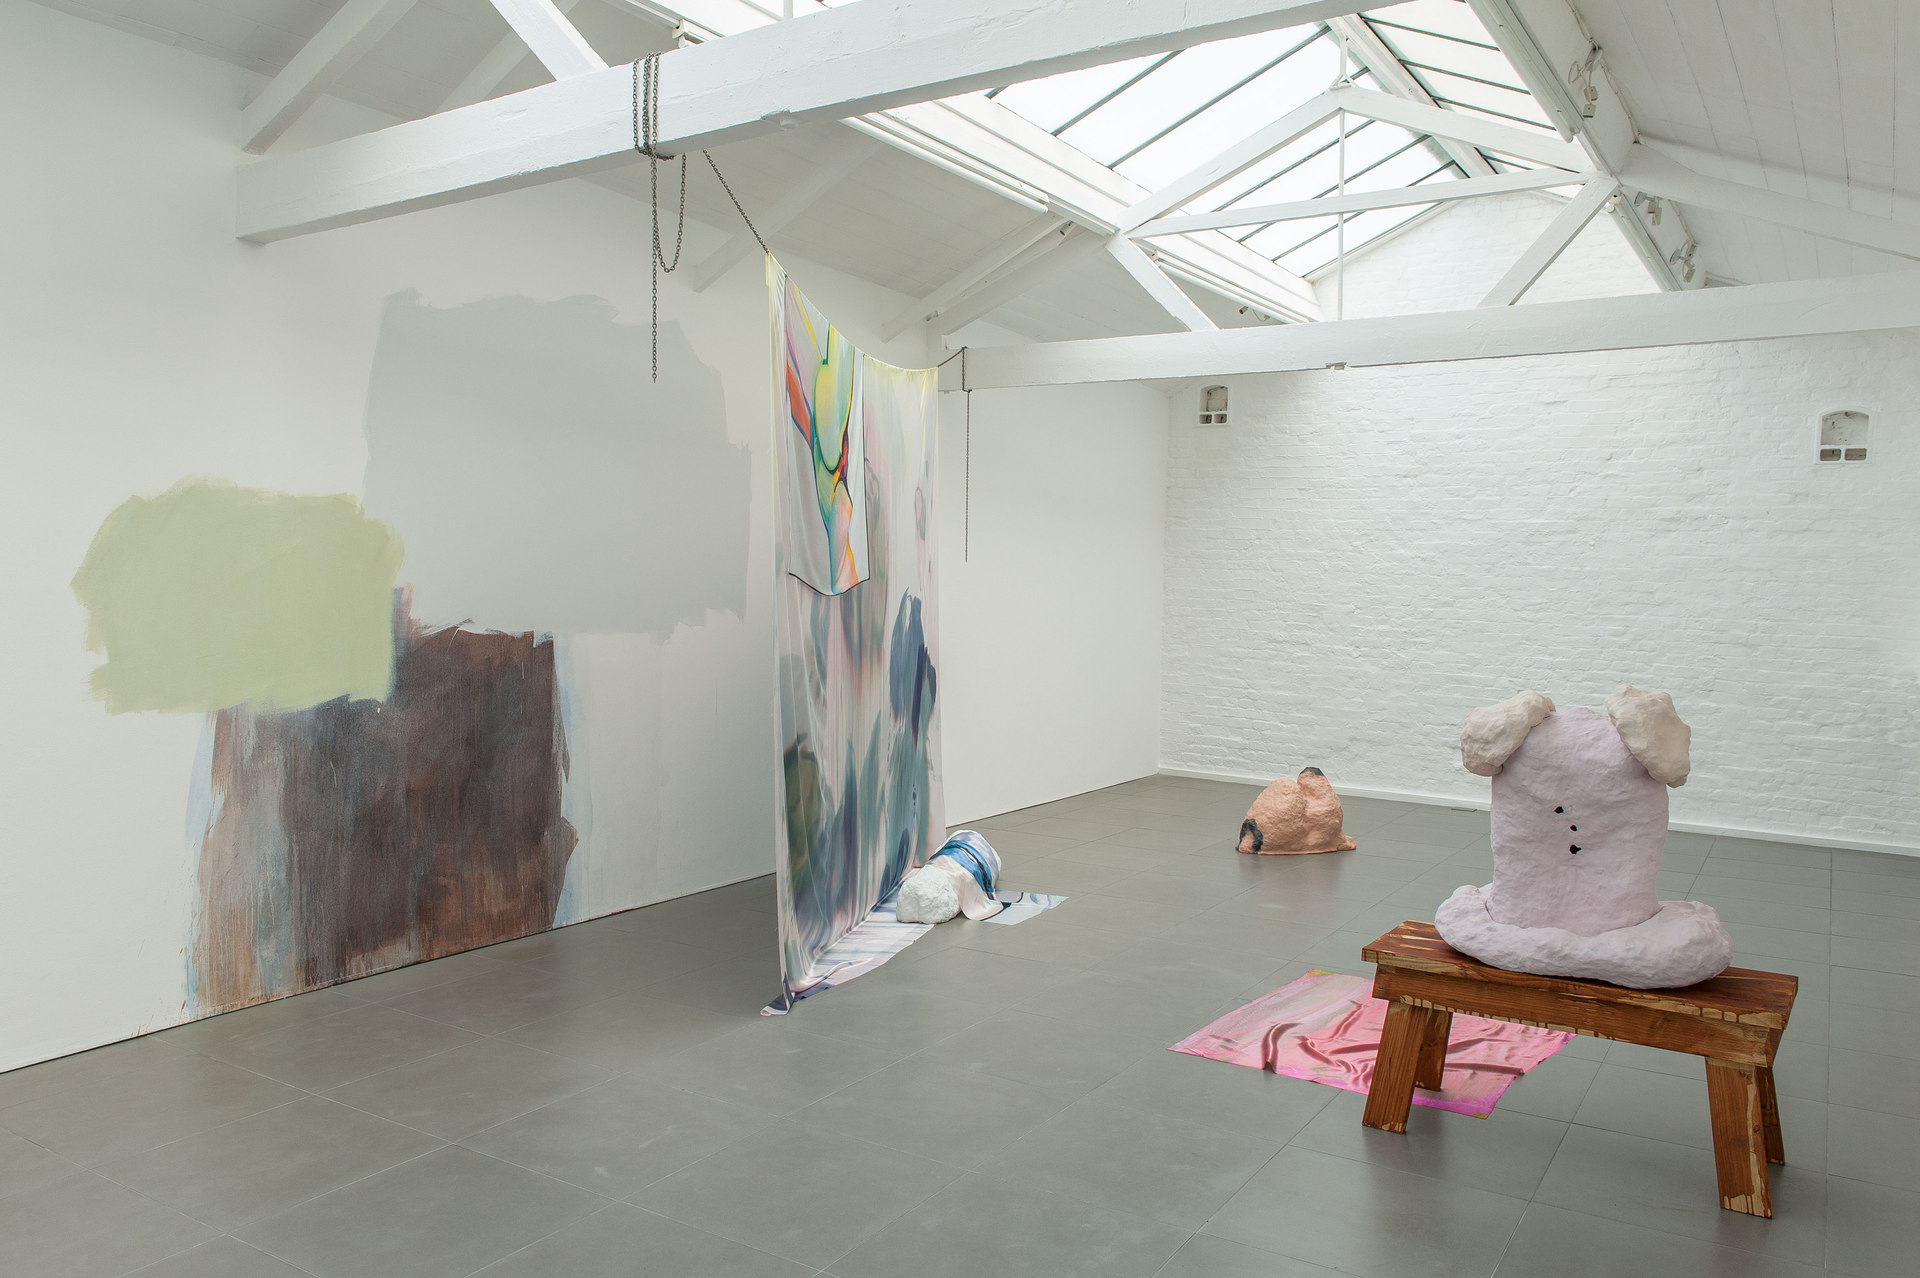 Pontoon Lip, 2014, installation overview, Cell Project Space